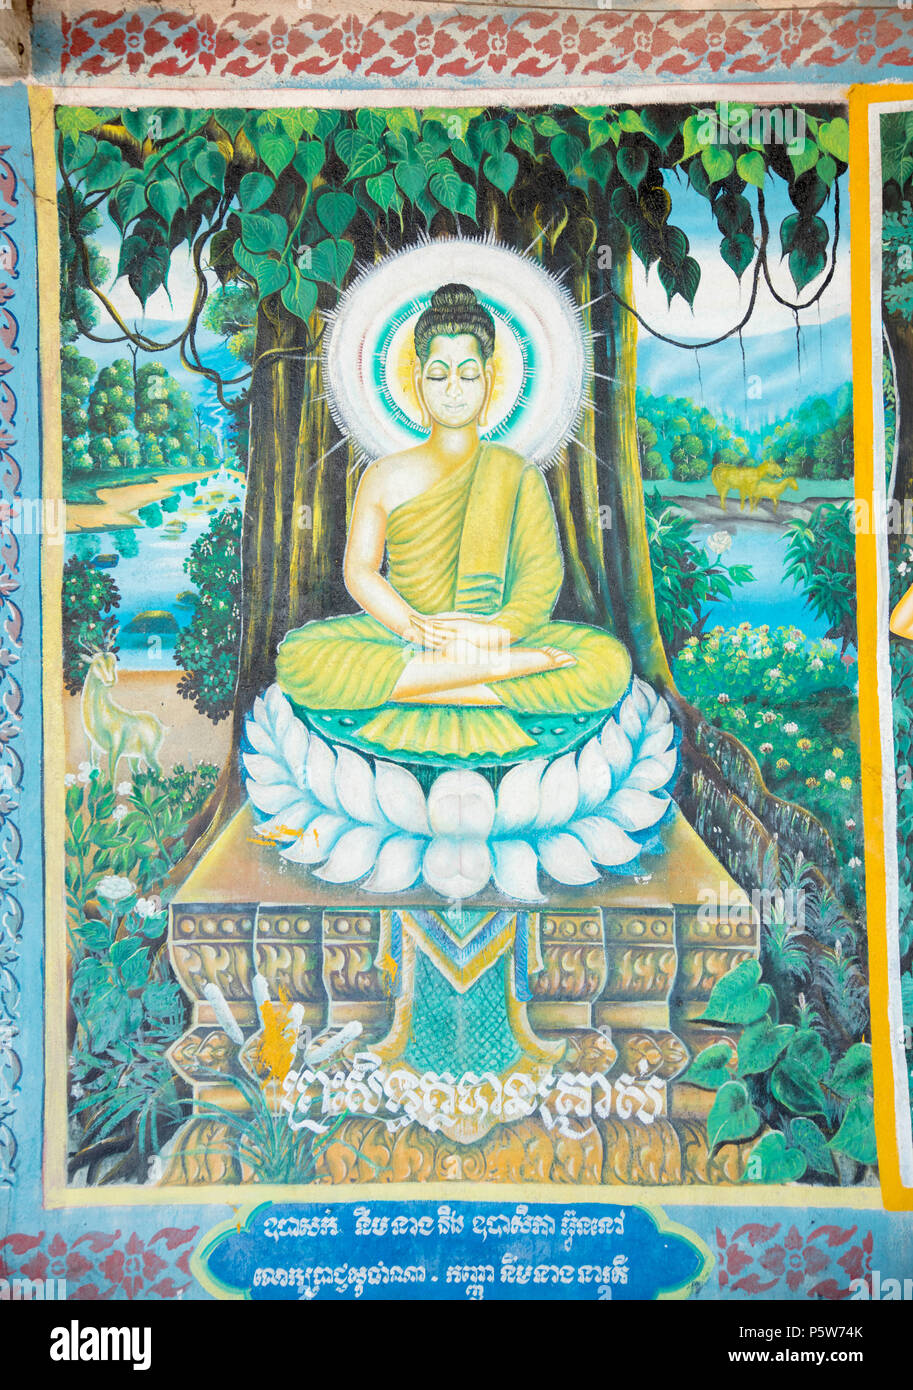 Buddhist painted murals at Chisor mountain temple in Cambodia showing scenes from the life of Siddhartha Buddha - Stock Image